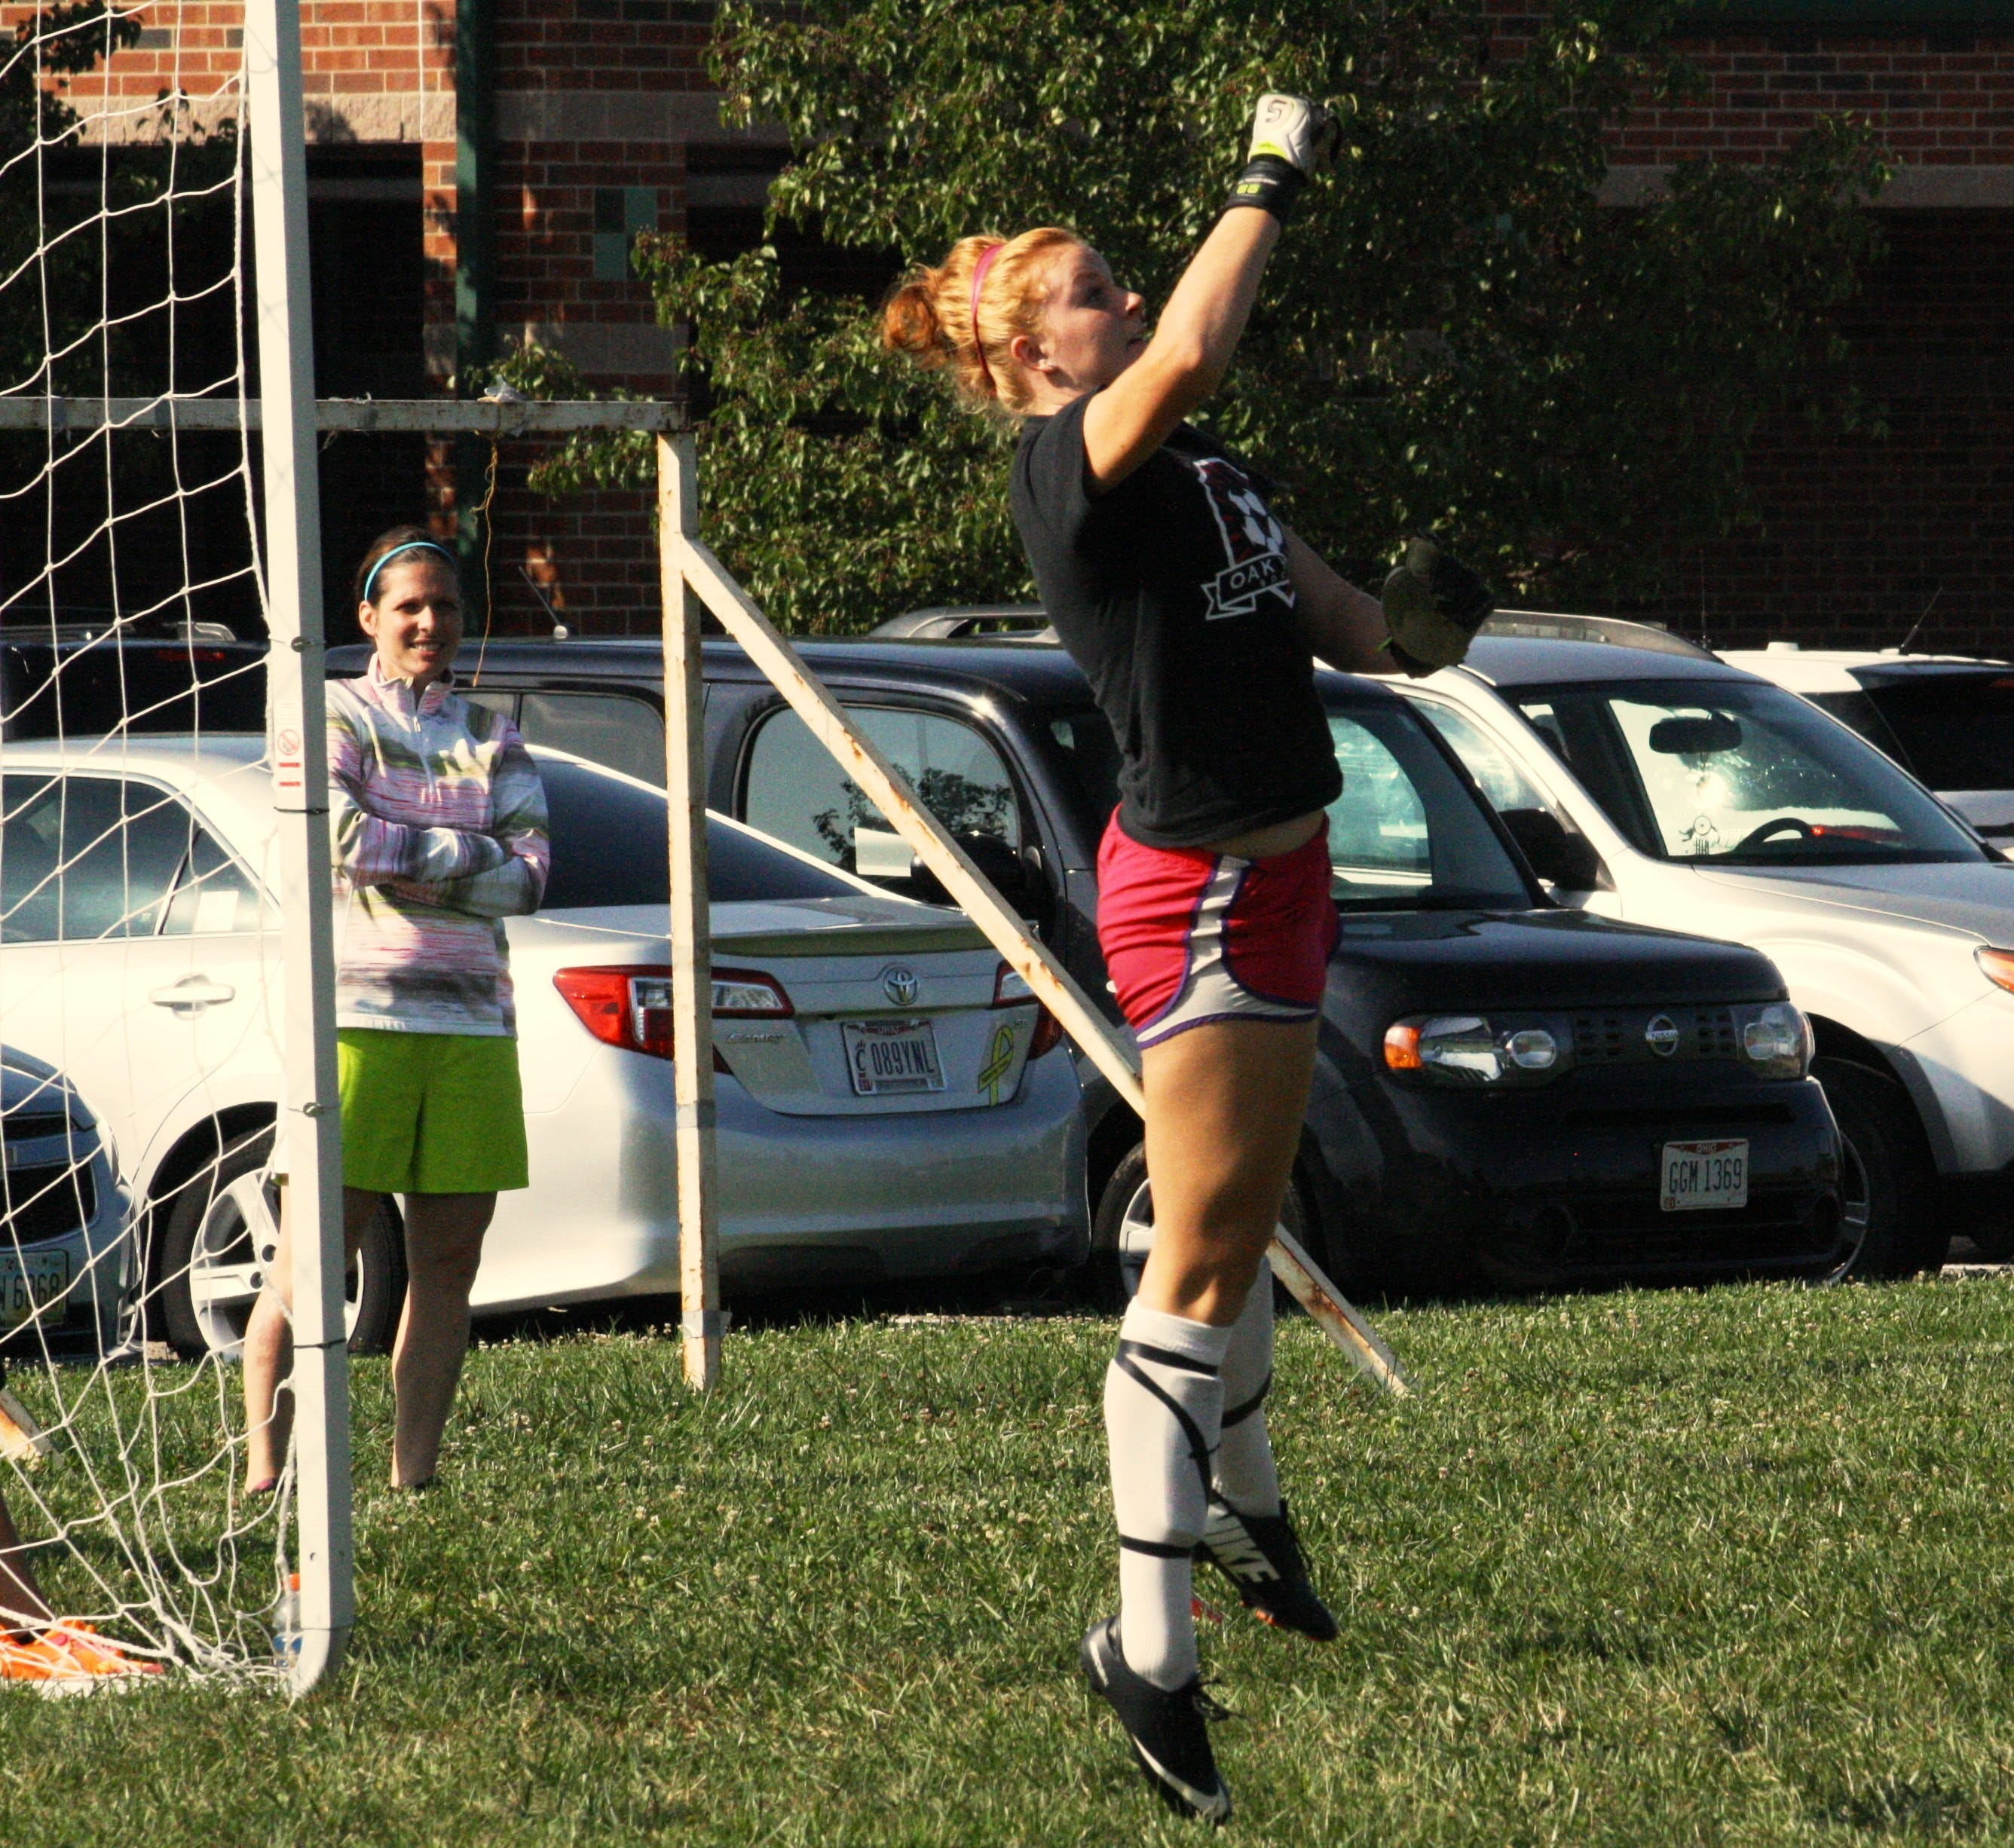 Oak Hills High School senior goalkeeper Emily Lohman jumps to make a save during a preseason practice drill Aug. 13 at Rapid Run Middle School. Lohman recorded nine shutouts in 2013.